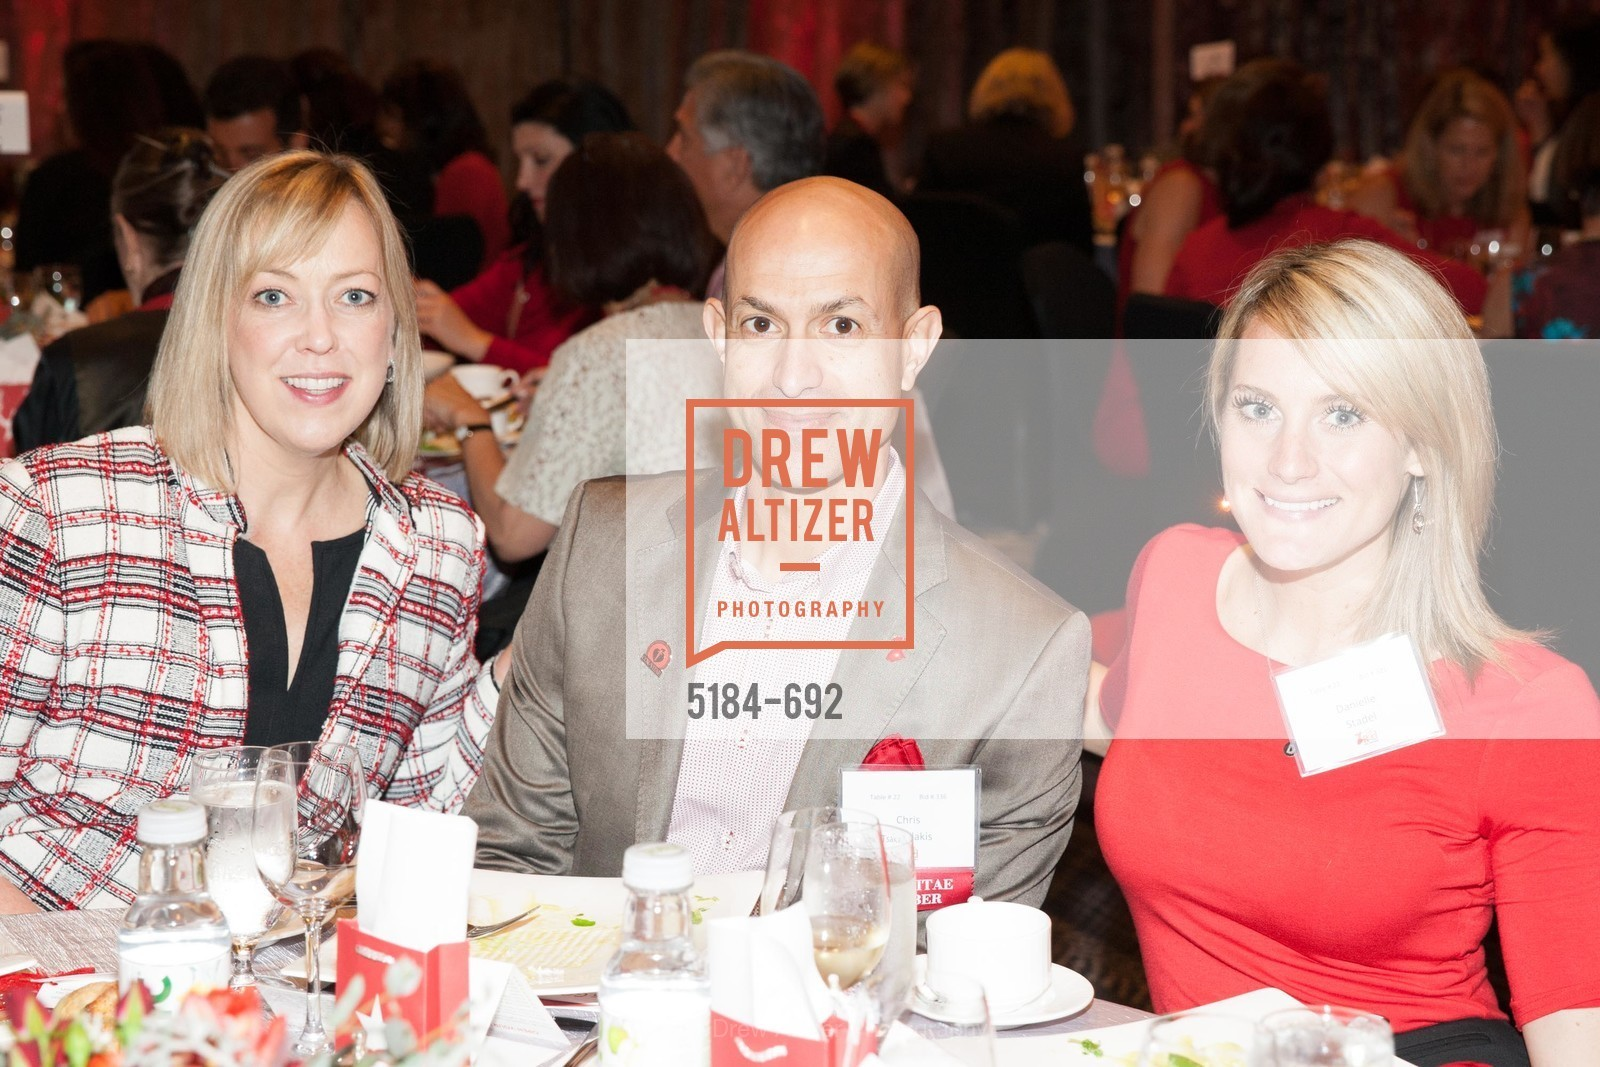 Shawn Casey-White, Chris Tsakakis, Danielle Stadel, 2015 GoRed for Women Luncheon, US, May 2nd, 2015,Drew Altizer, Drew Altizer Photography, full-service event agency, private events, San Francisco photographer, photographer California